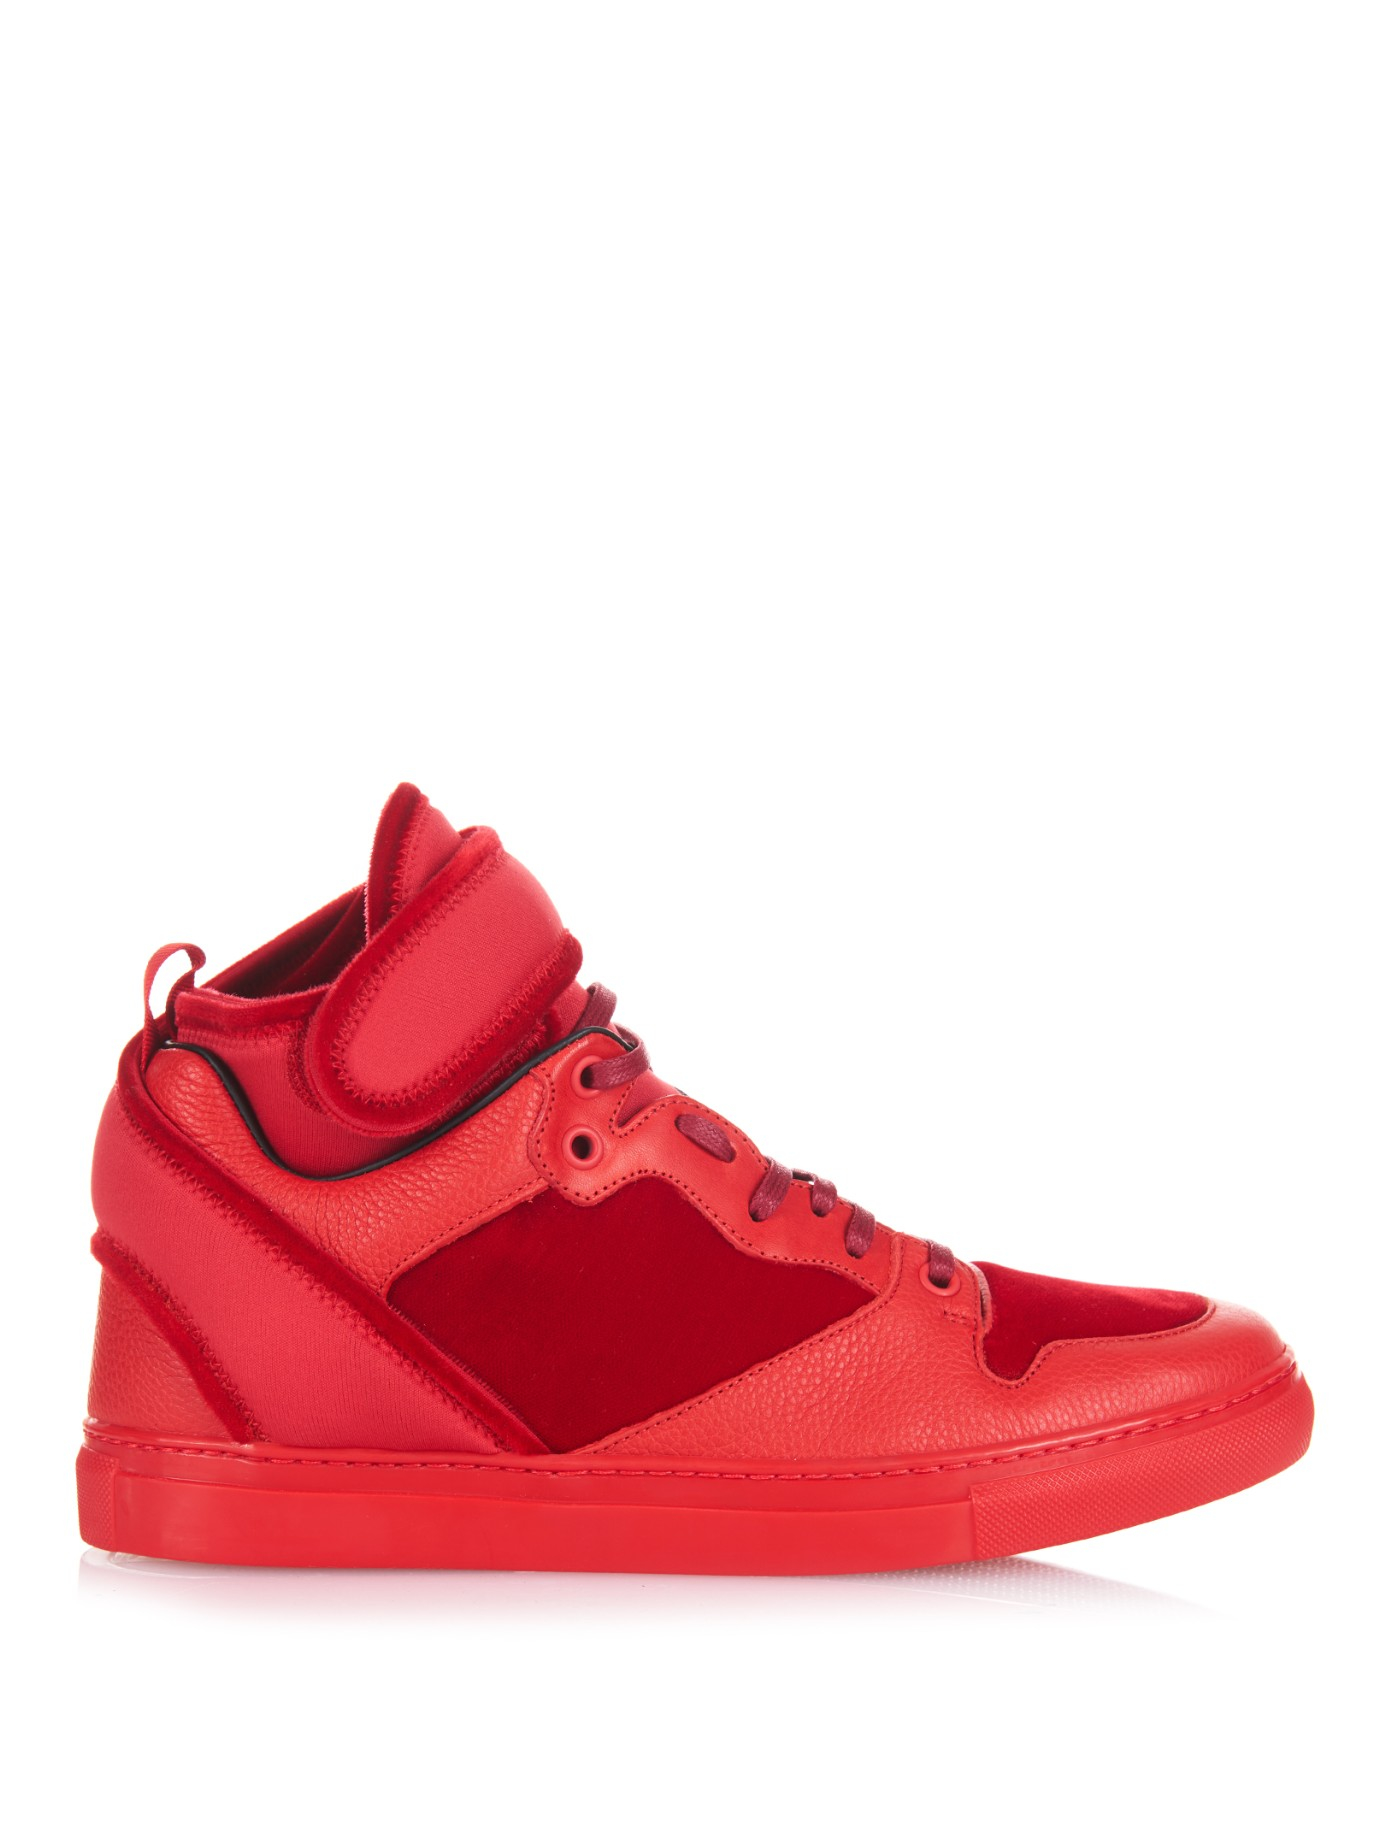 balenciaga velvet and leather paneled hightop sneakers in